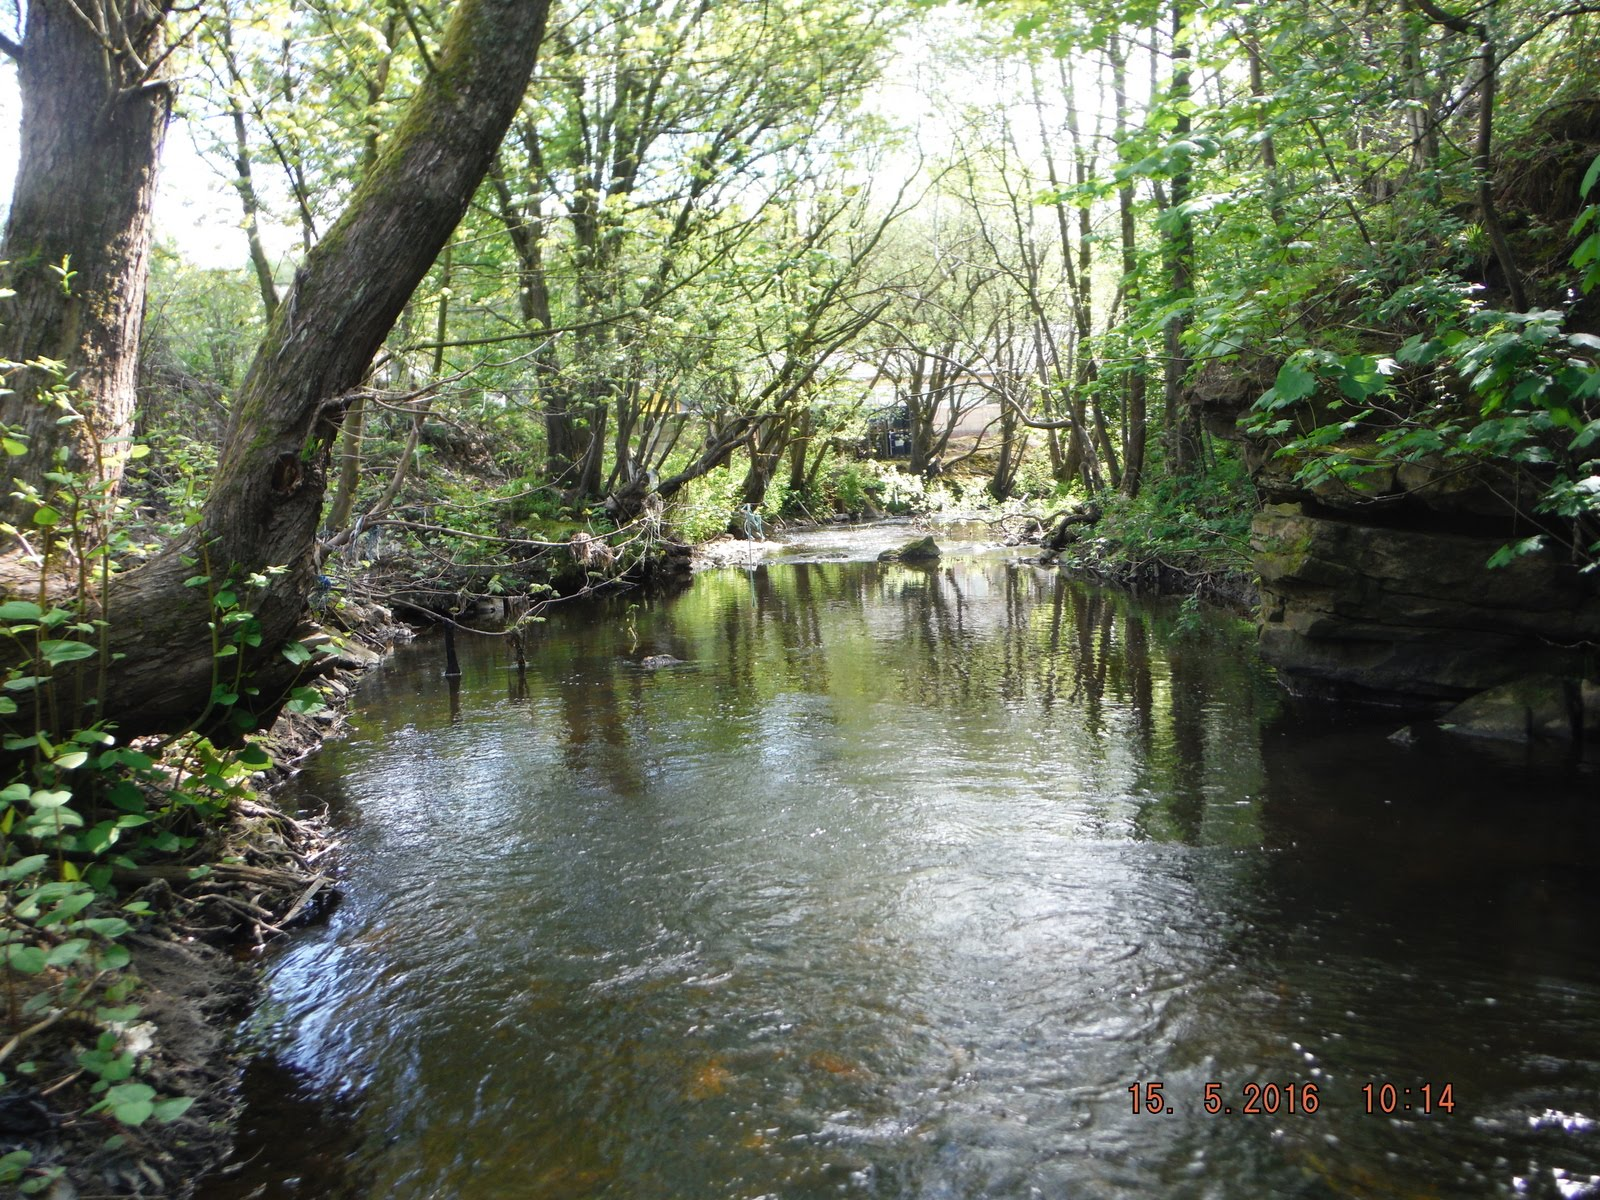 Flyfishing the River Irwell and other Streams.